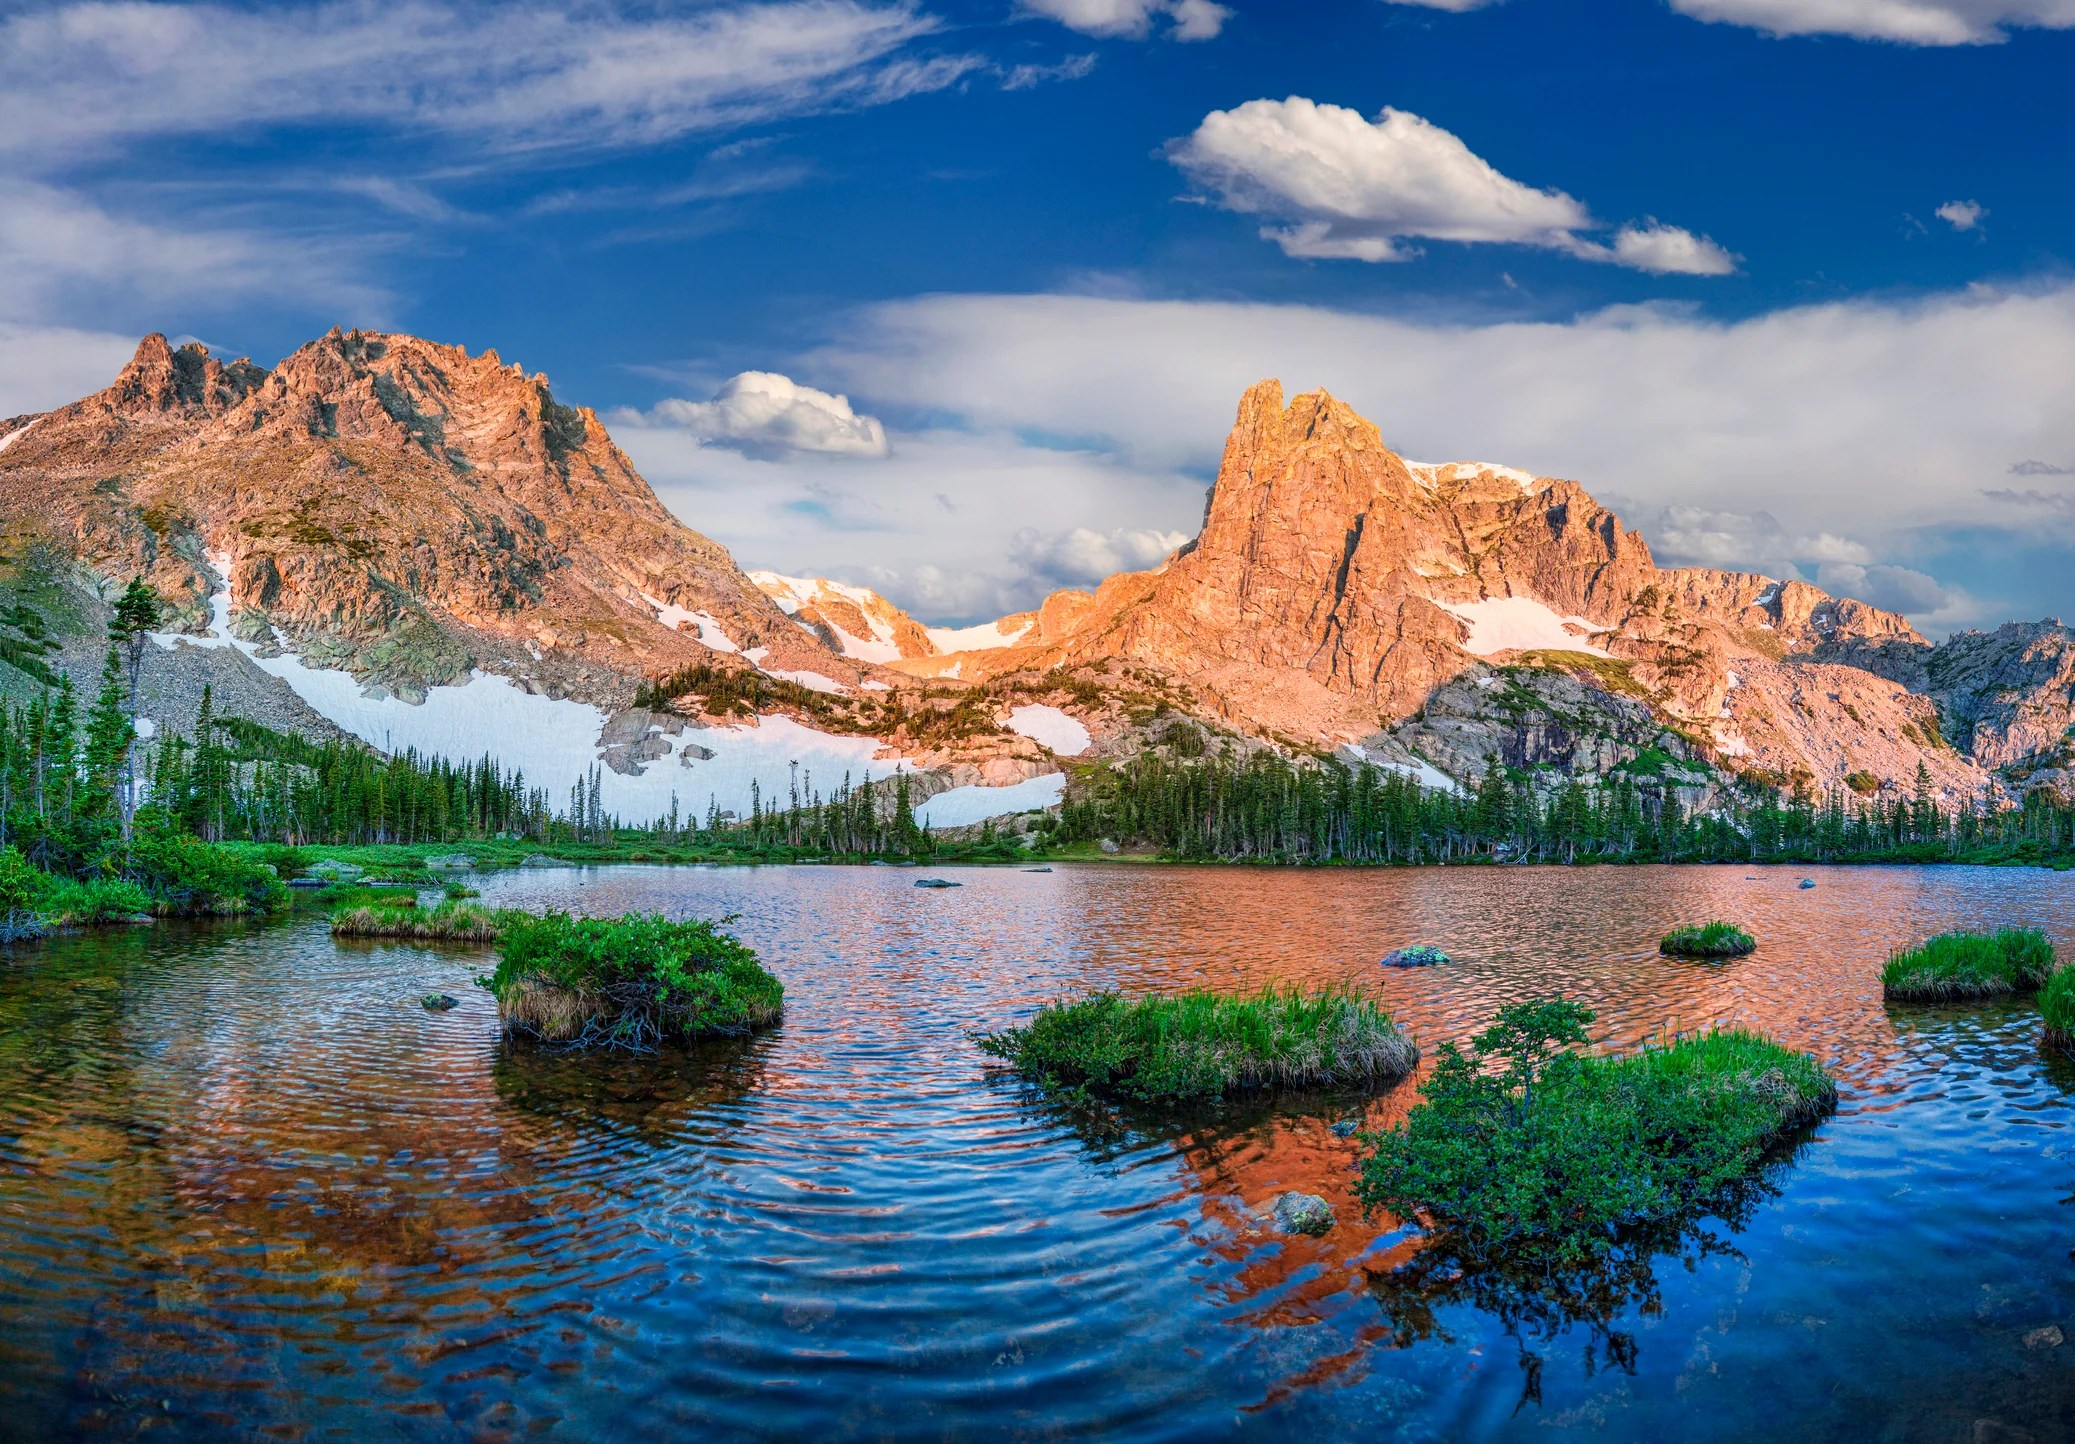 Guide to visiting Rocky Mountain National Park